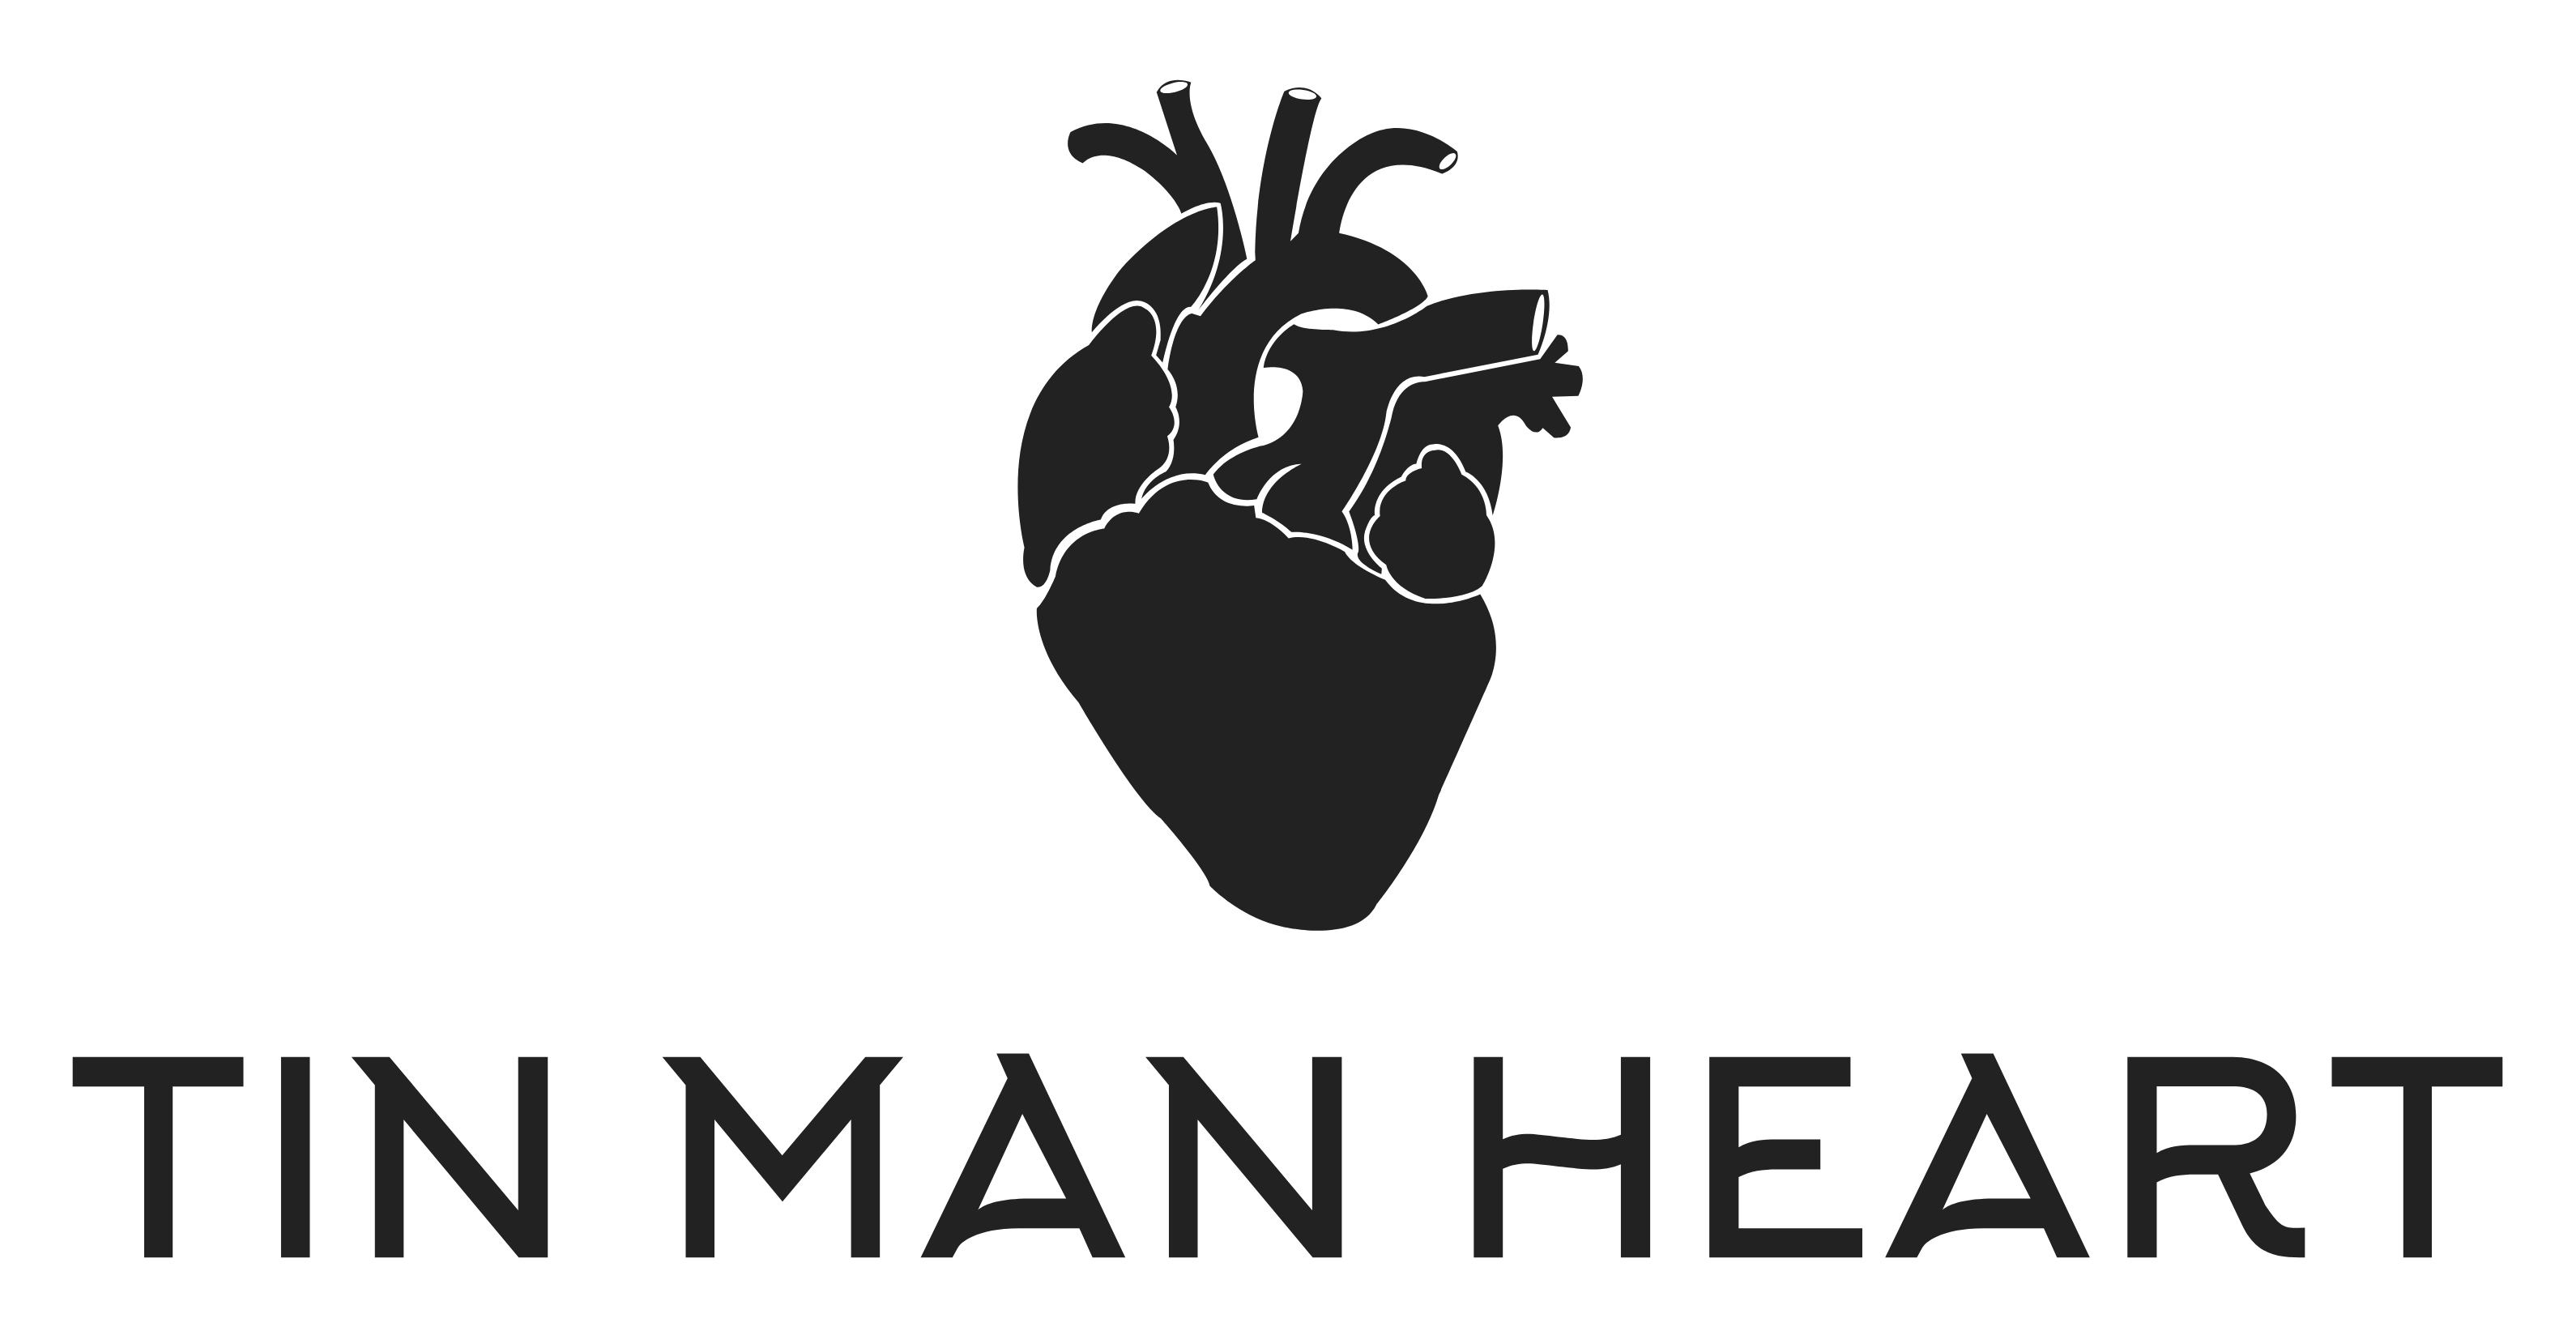 Tin Man Heart